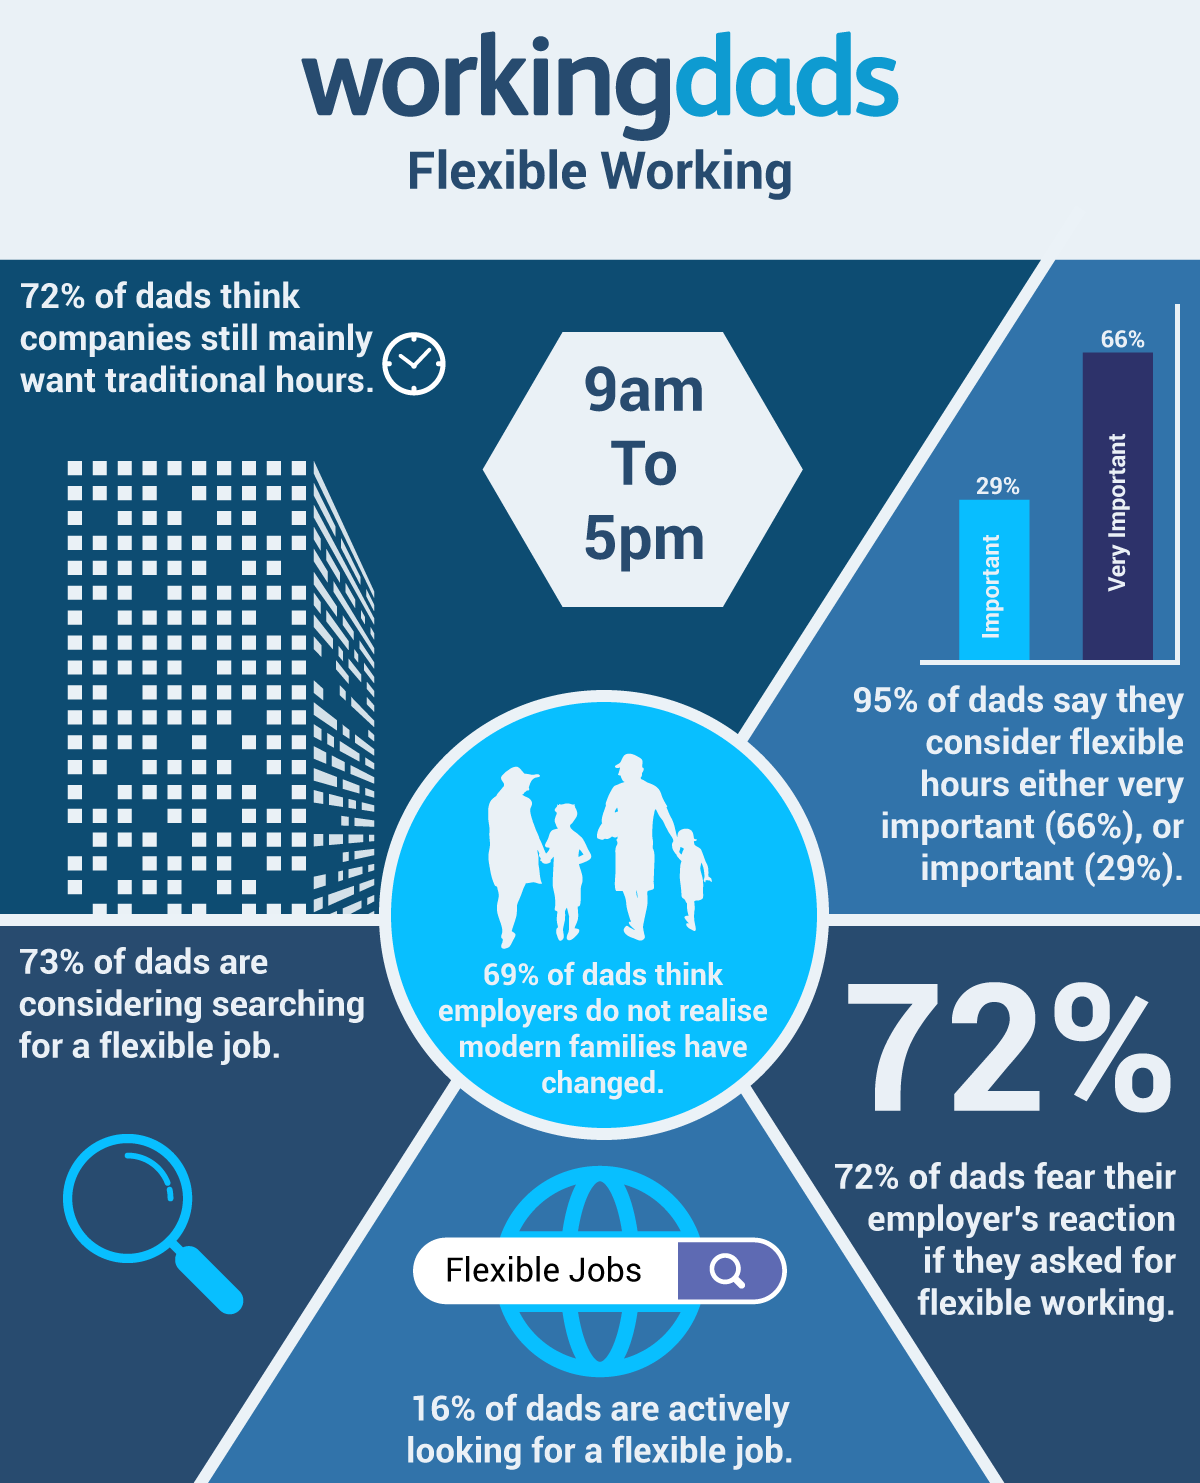 Working Dads 2018 Infographic